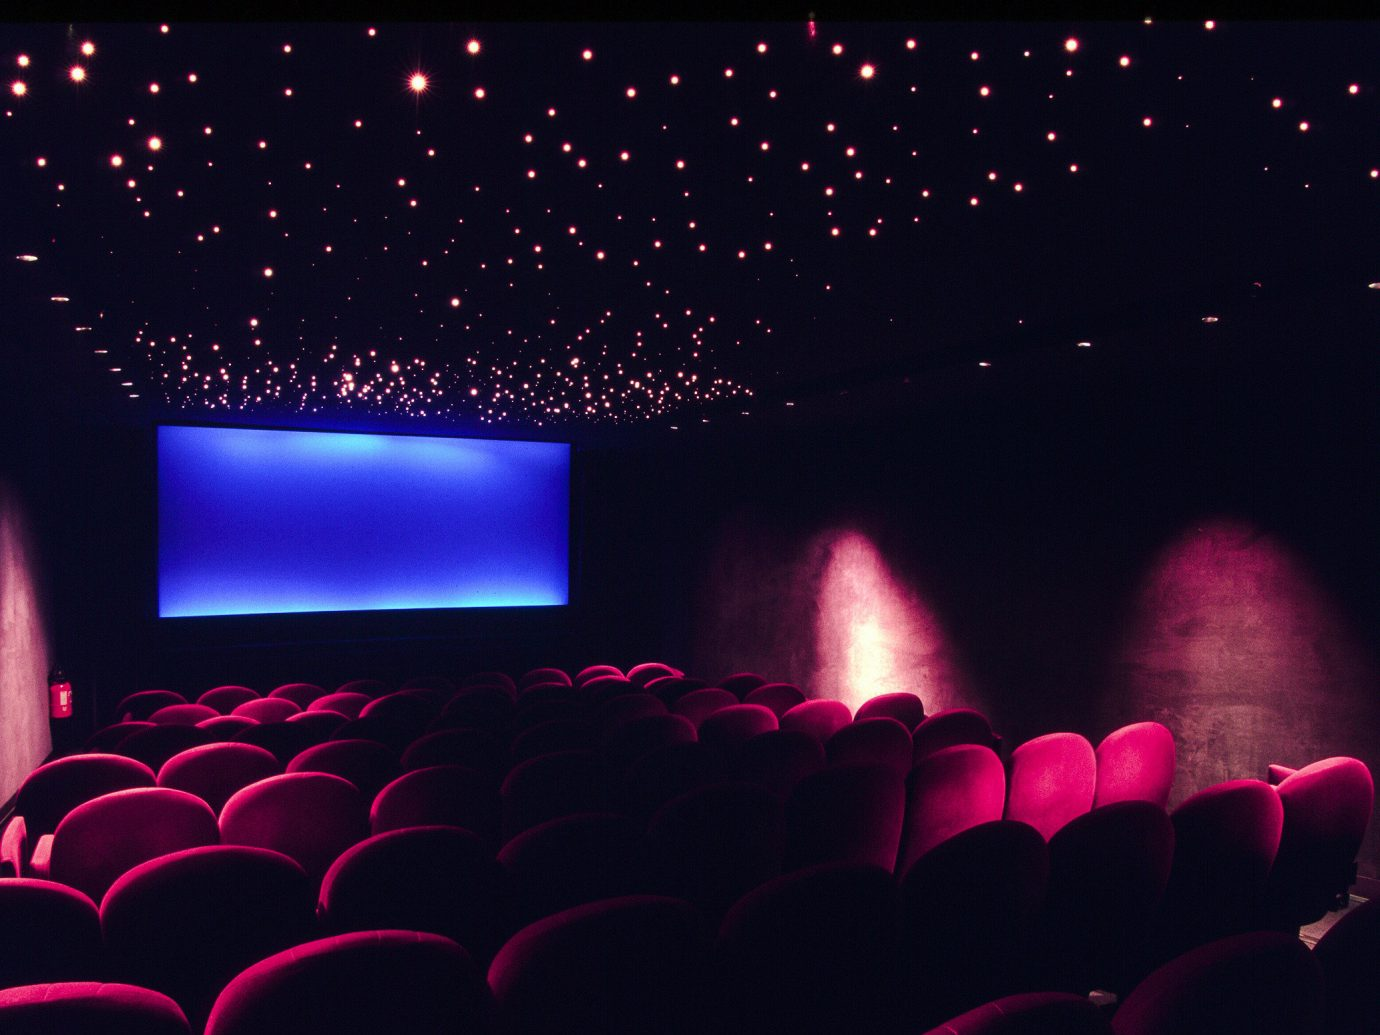 Romance Trip Ideas light Entertainment theatre laptop stage lighting auditorium darkness movie theater magenta sky computer wallpaper night event